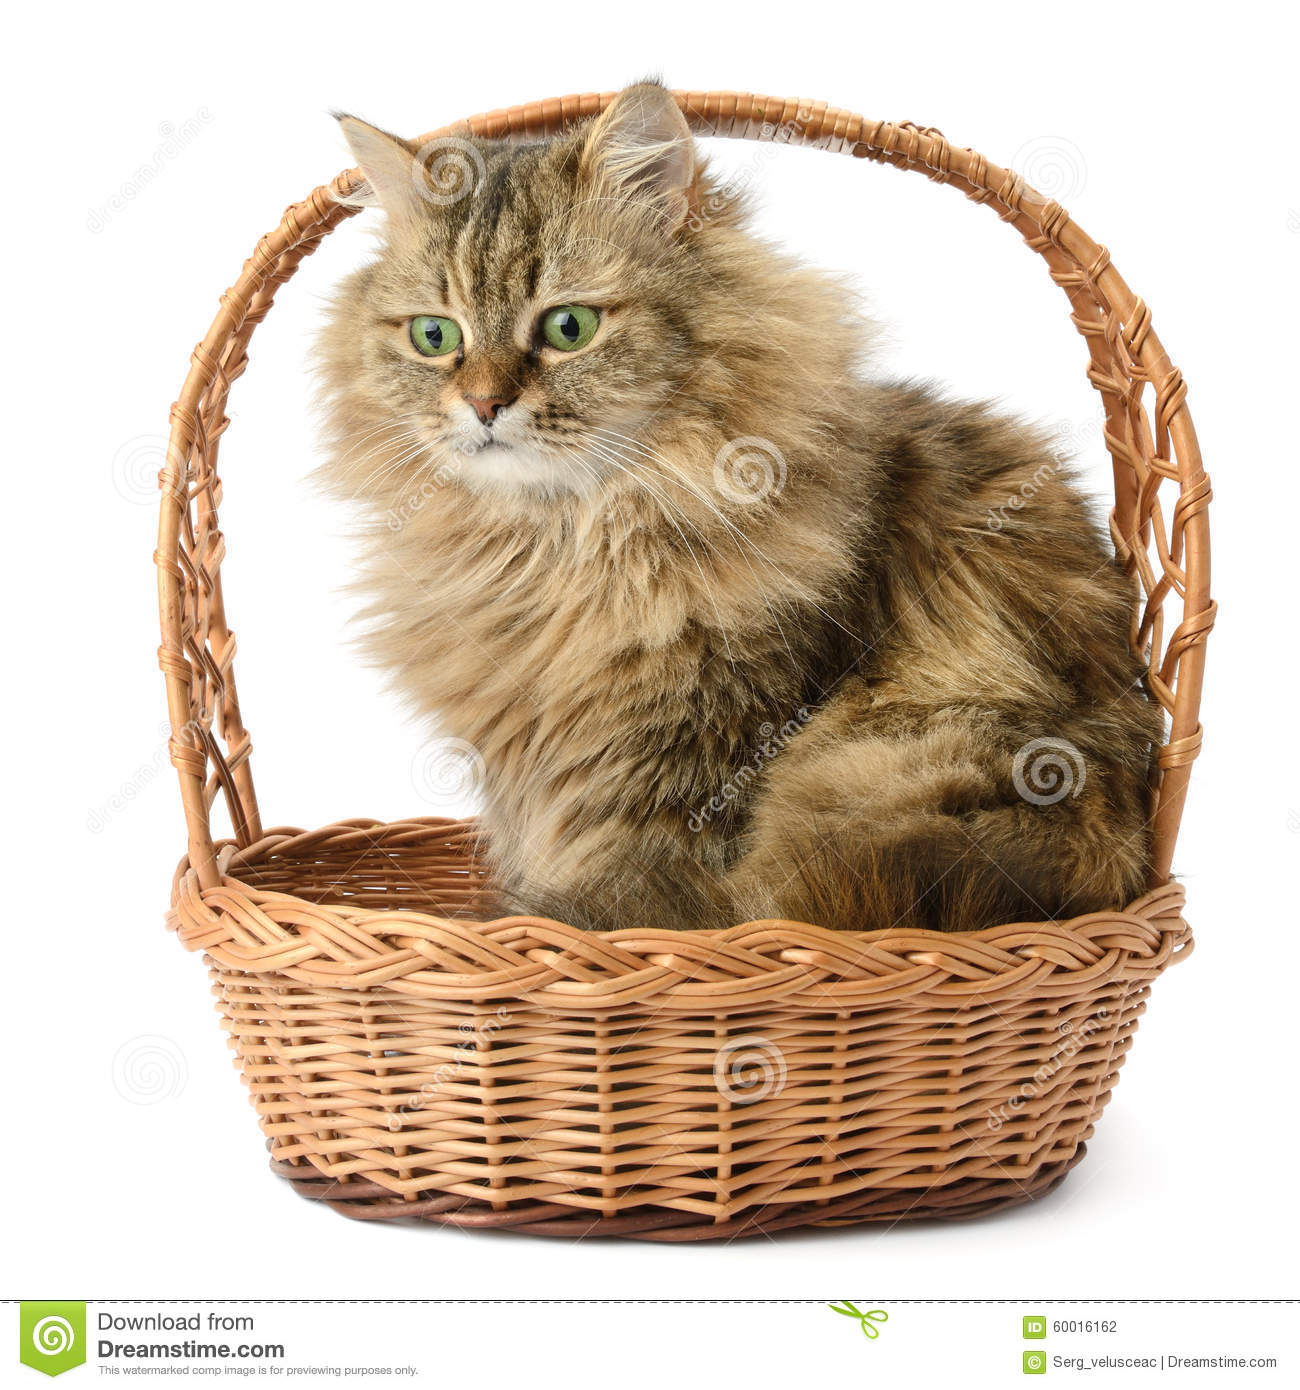 Beautiful Cat In Basket Stock Photo - Image: 60016162 Tabby Cat Sitting Up